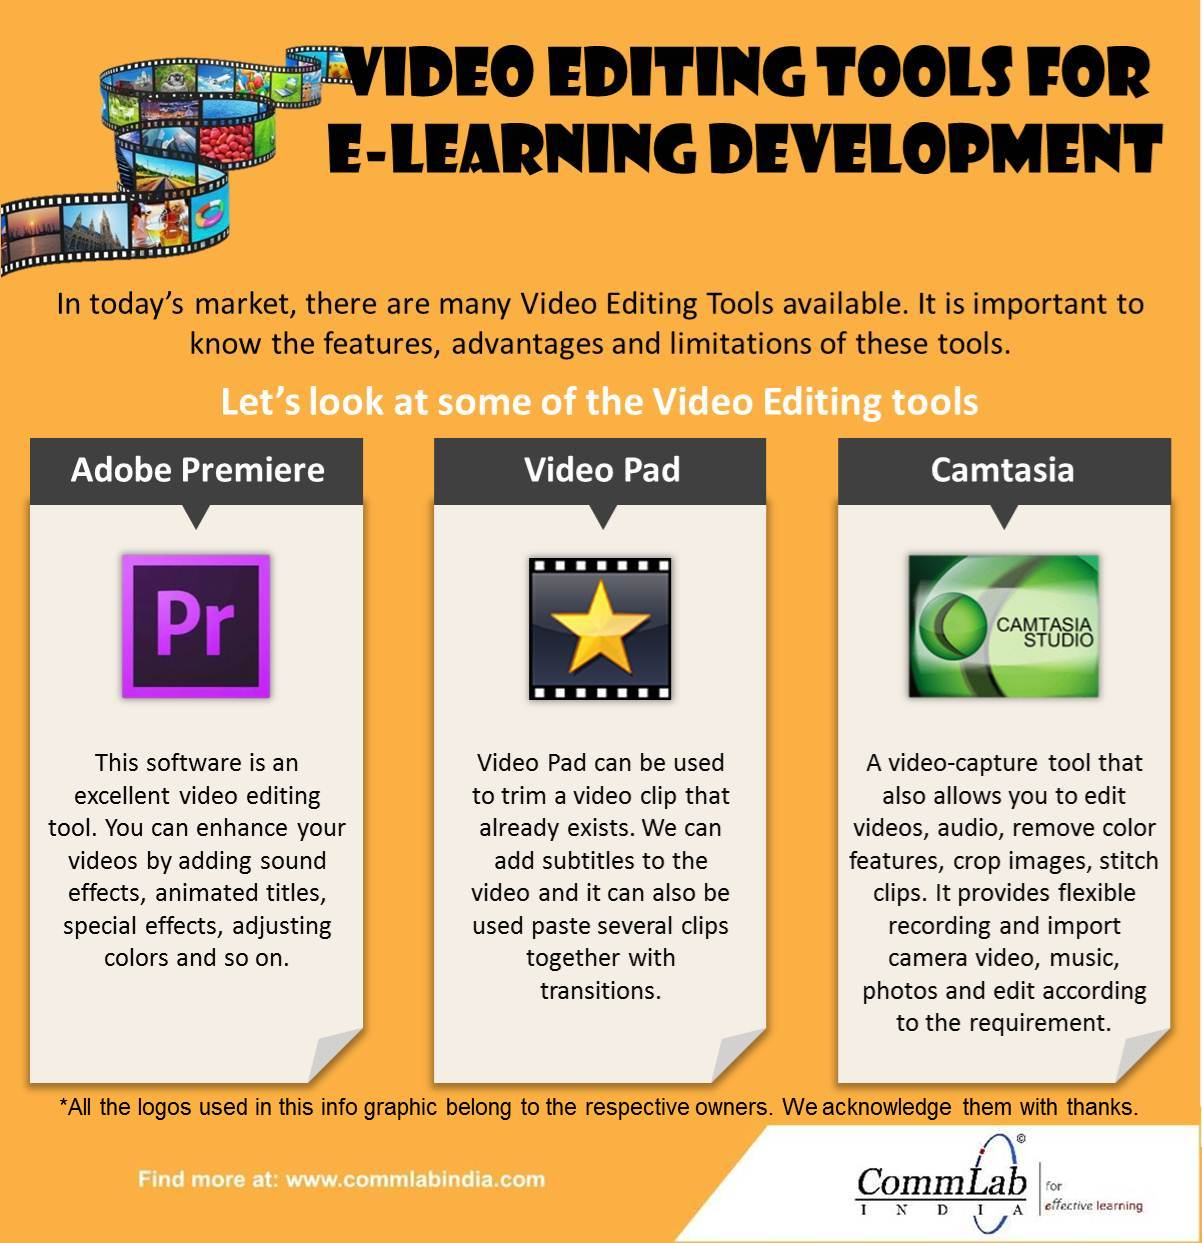 Video Editing Tools for E-learning Development - An Infographic